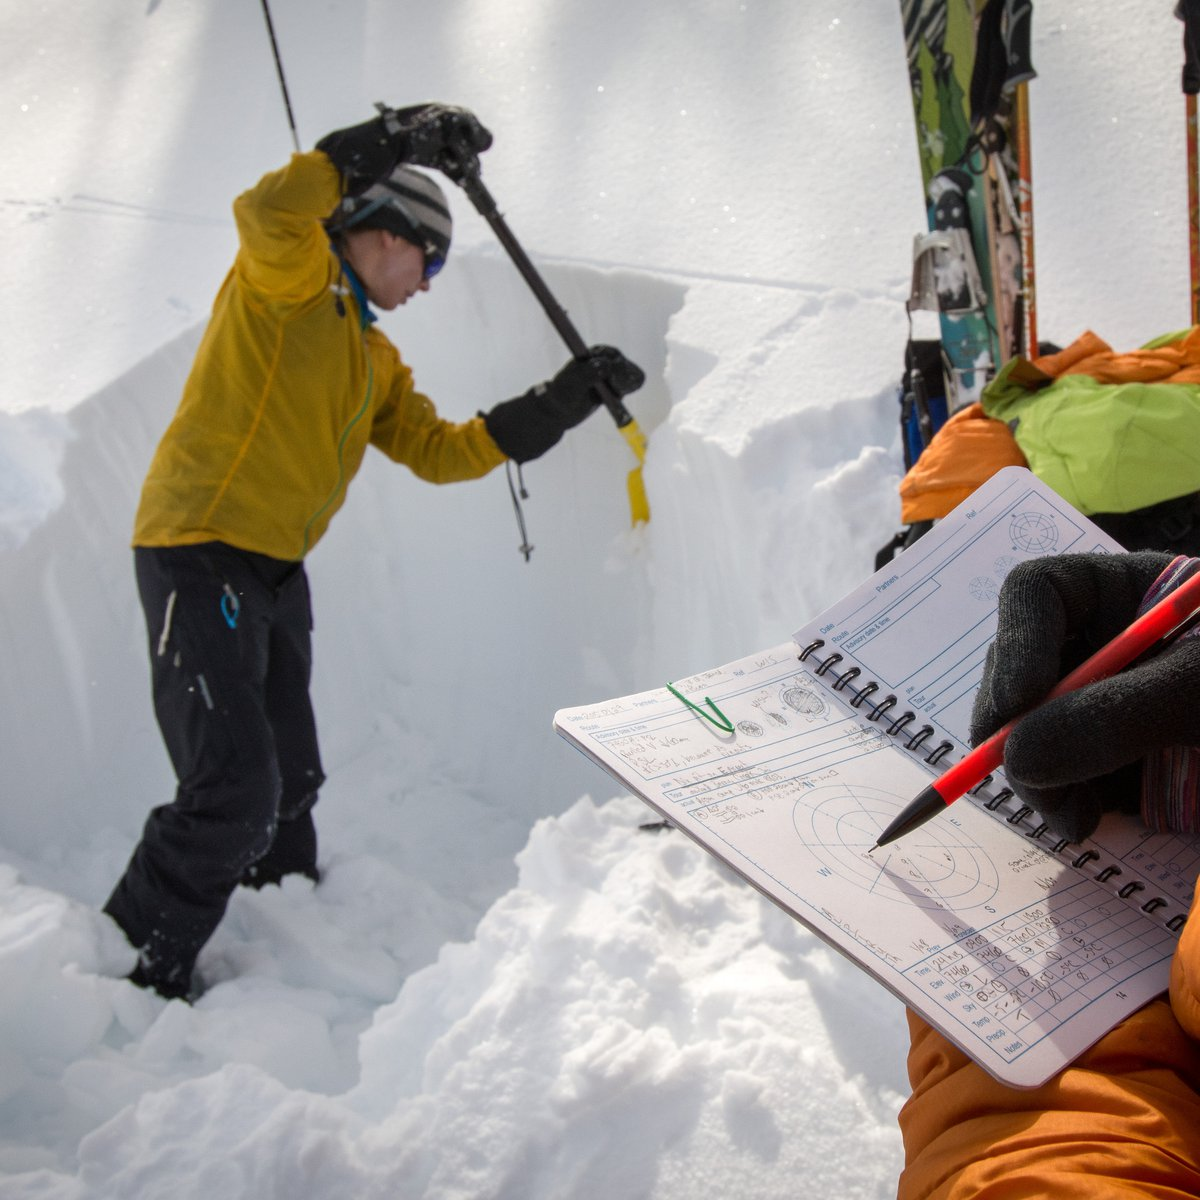 Digging a snow pit and taking notes during avalanche training